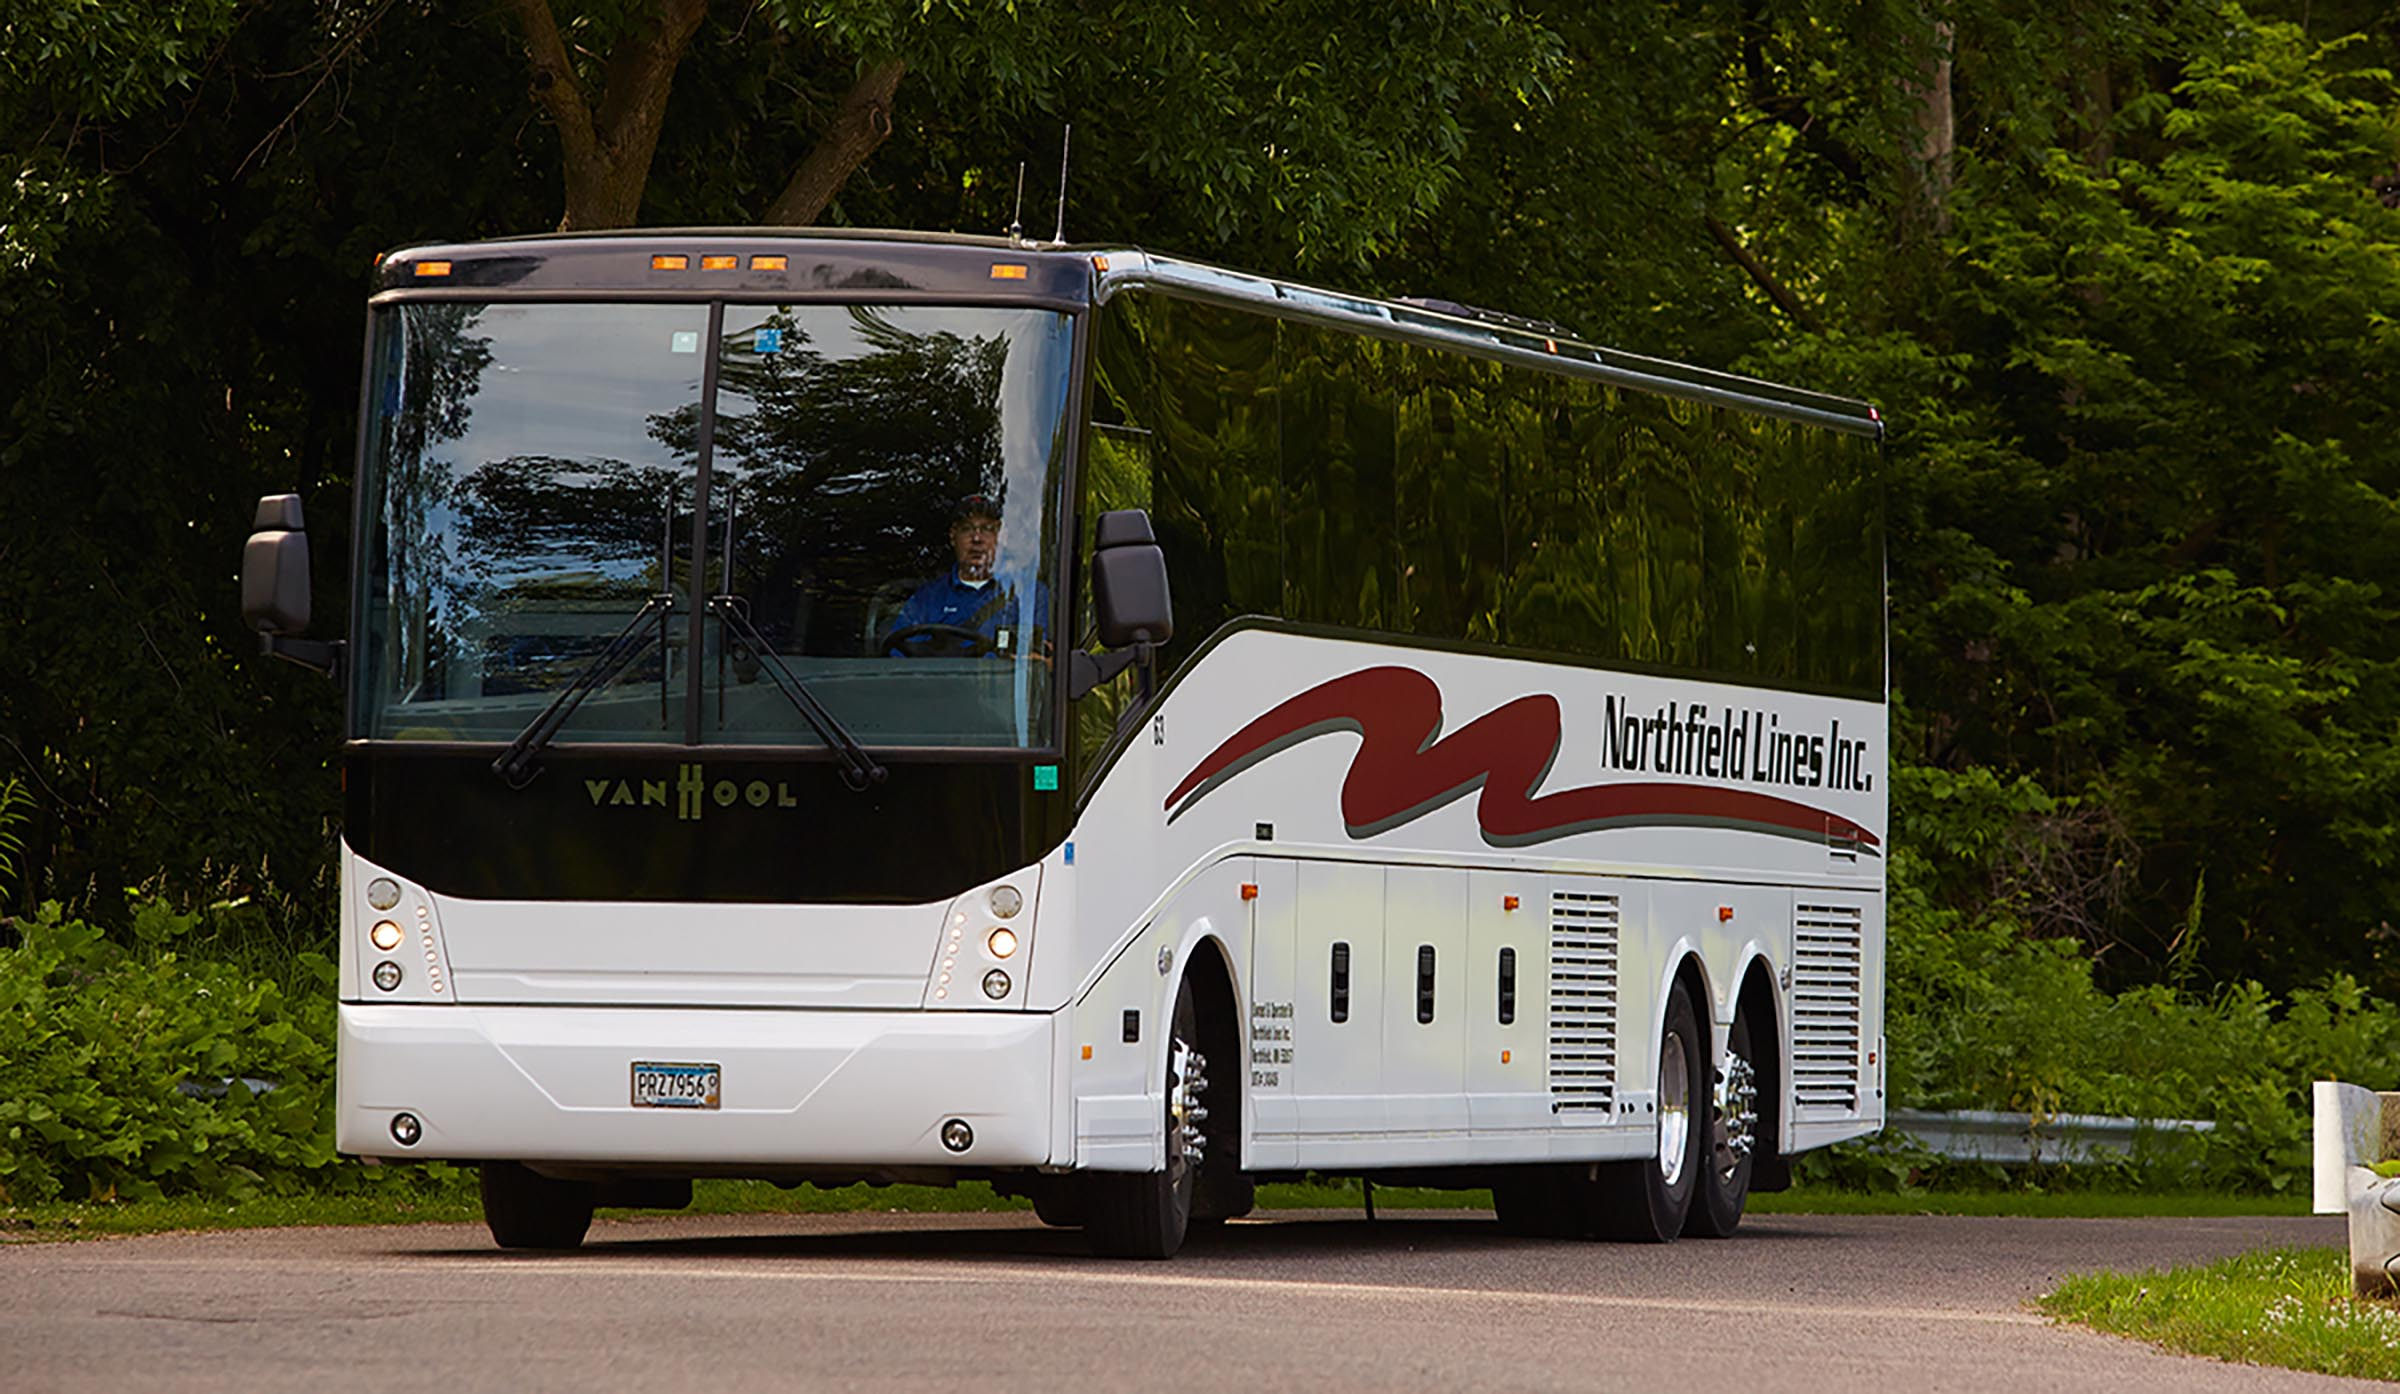 Bus Companies Northfield Lines Inc Charter Bus And Bus Rental Minneapolis St Paul Mn Des Moines Ia Sioux Falls Sd Fargo Nd Chicago Il